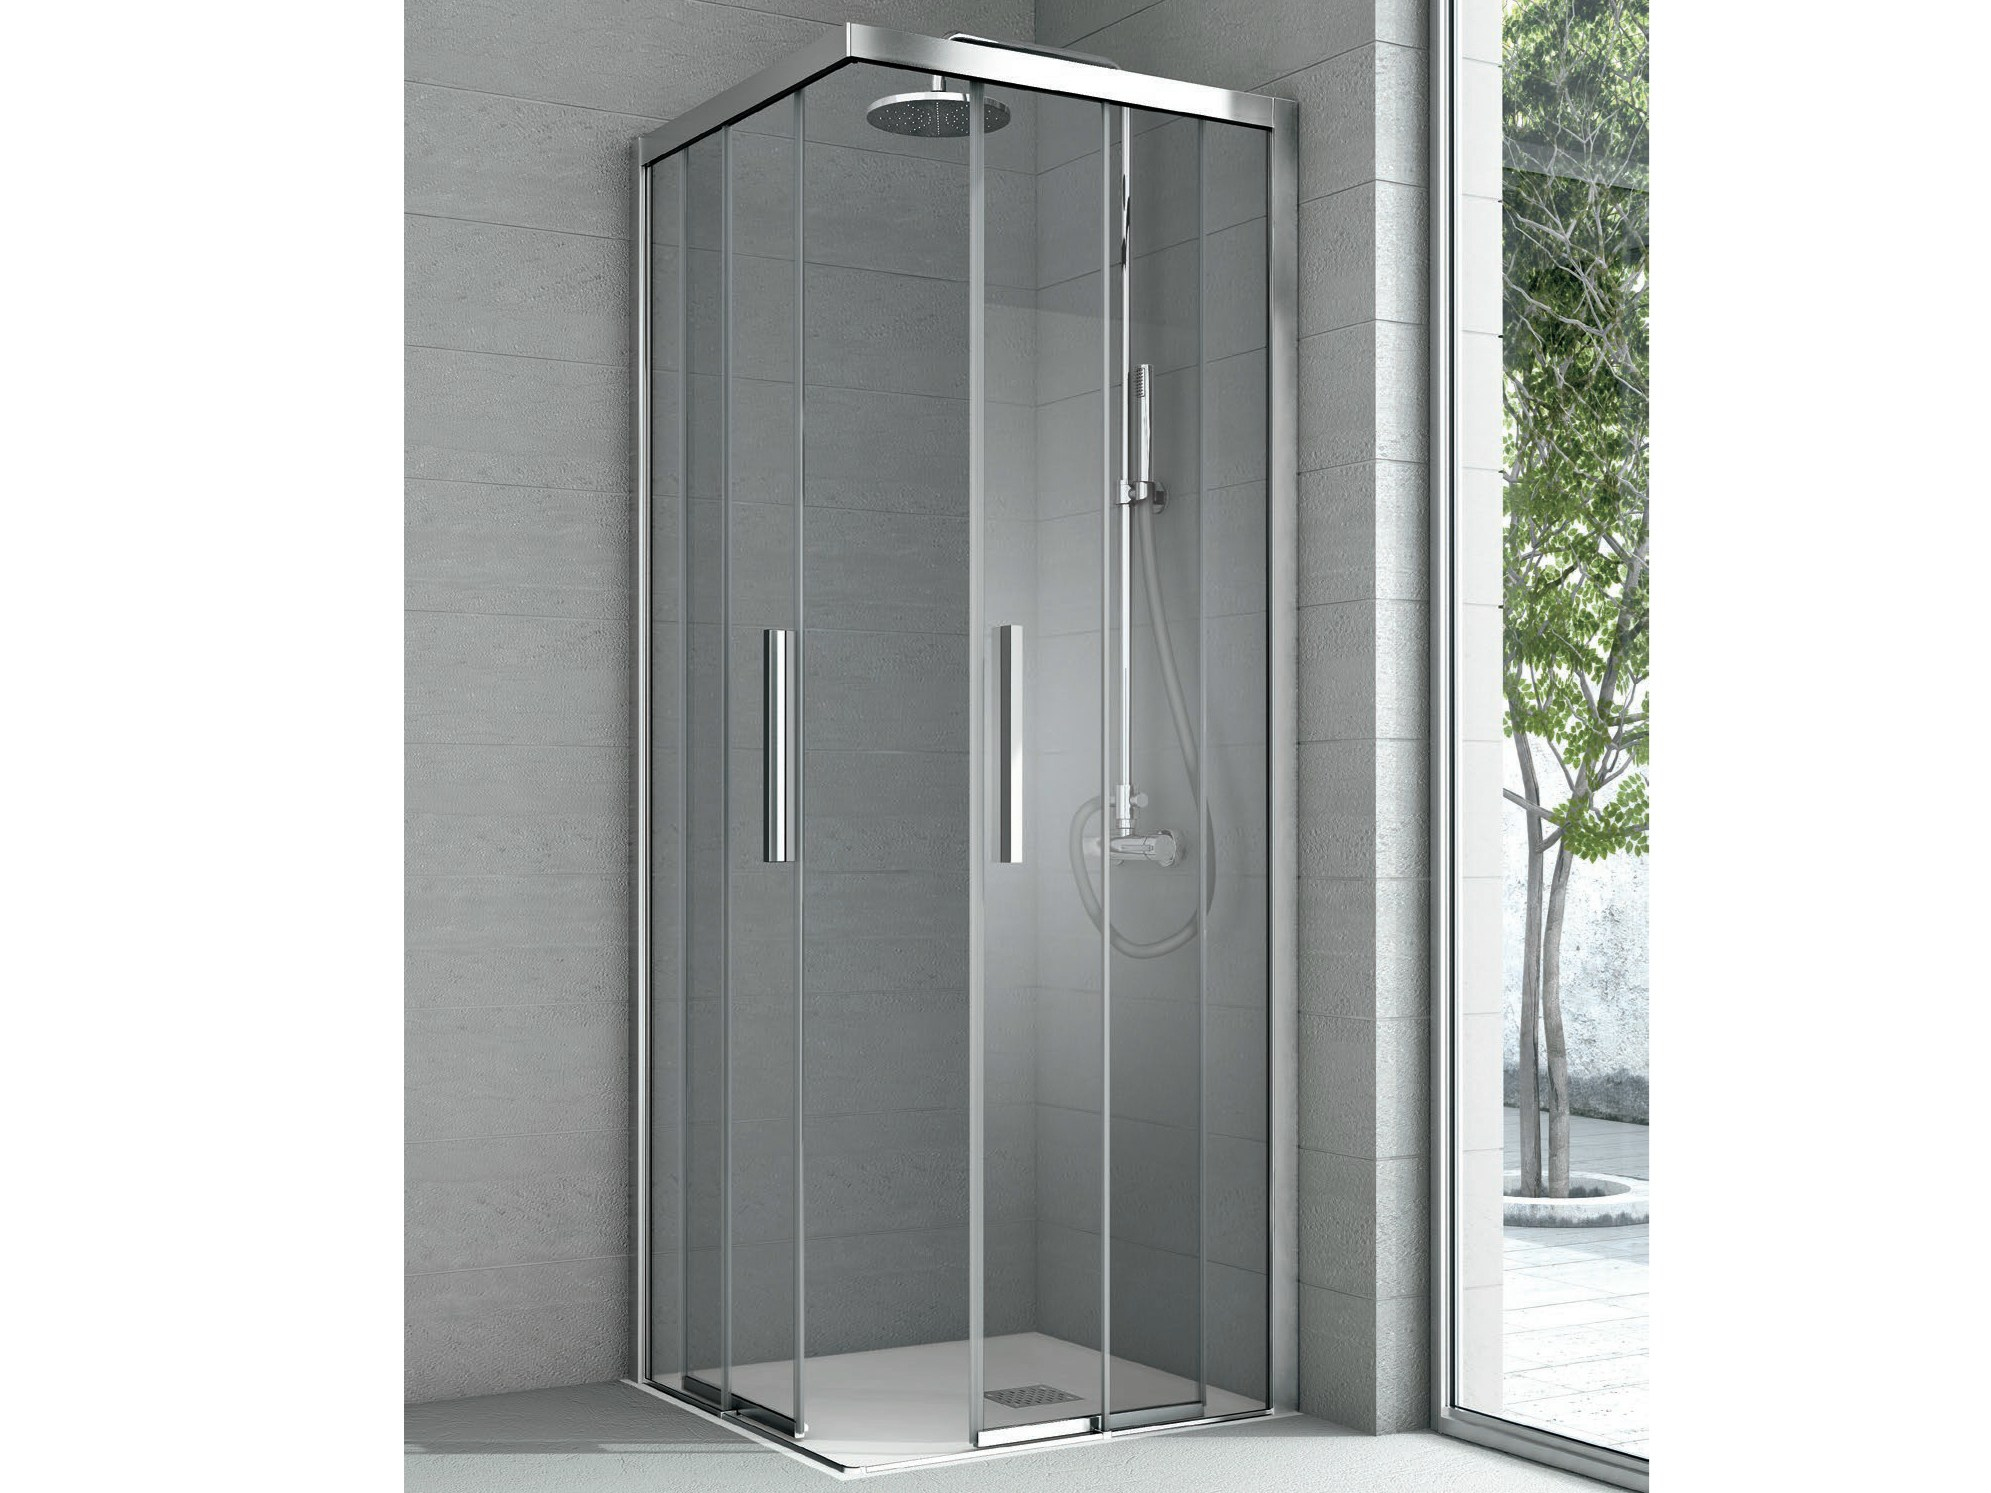 Shower cabins with sliding door archiproducts eventelaan Image collections